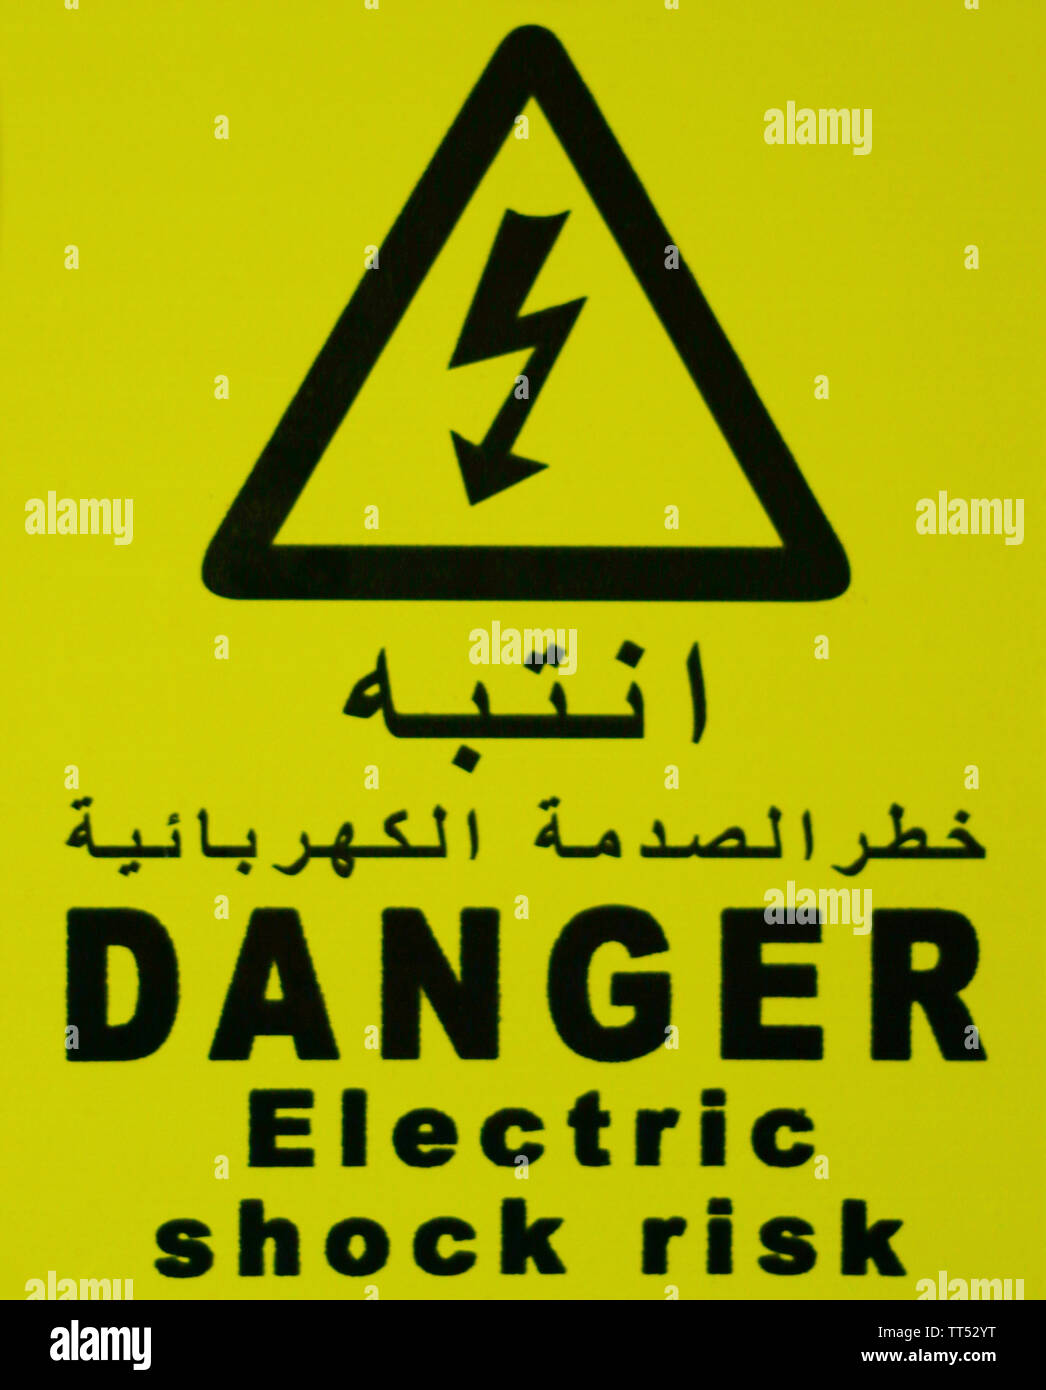 Electric Shock Risk Stock Photos & Electric Shock Risk Stock